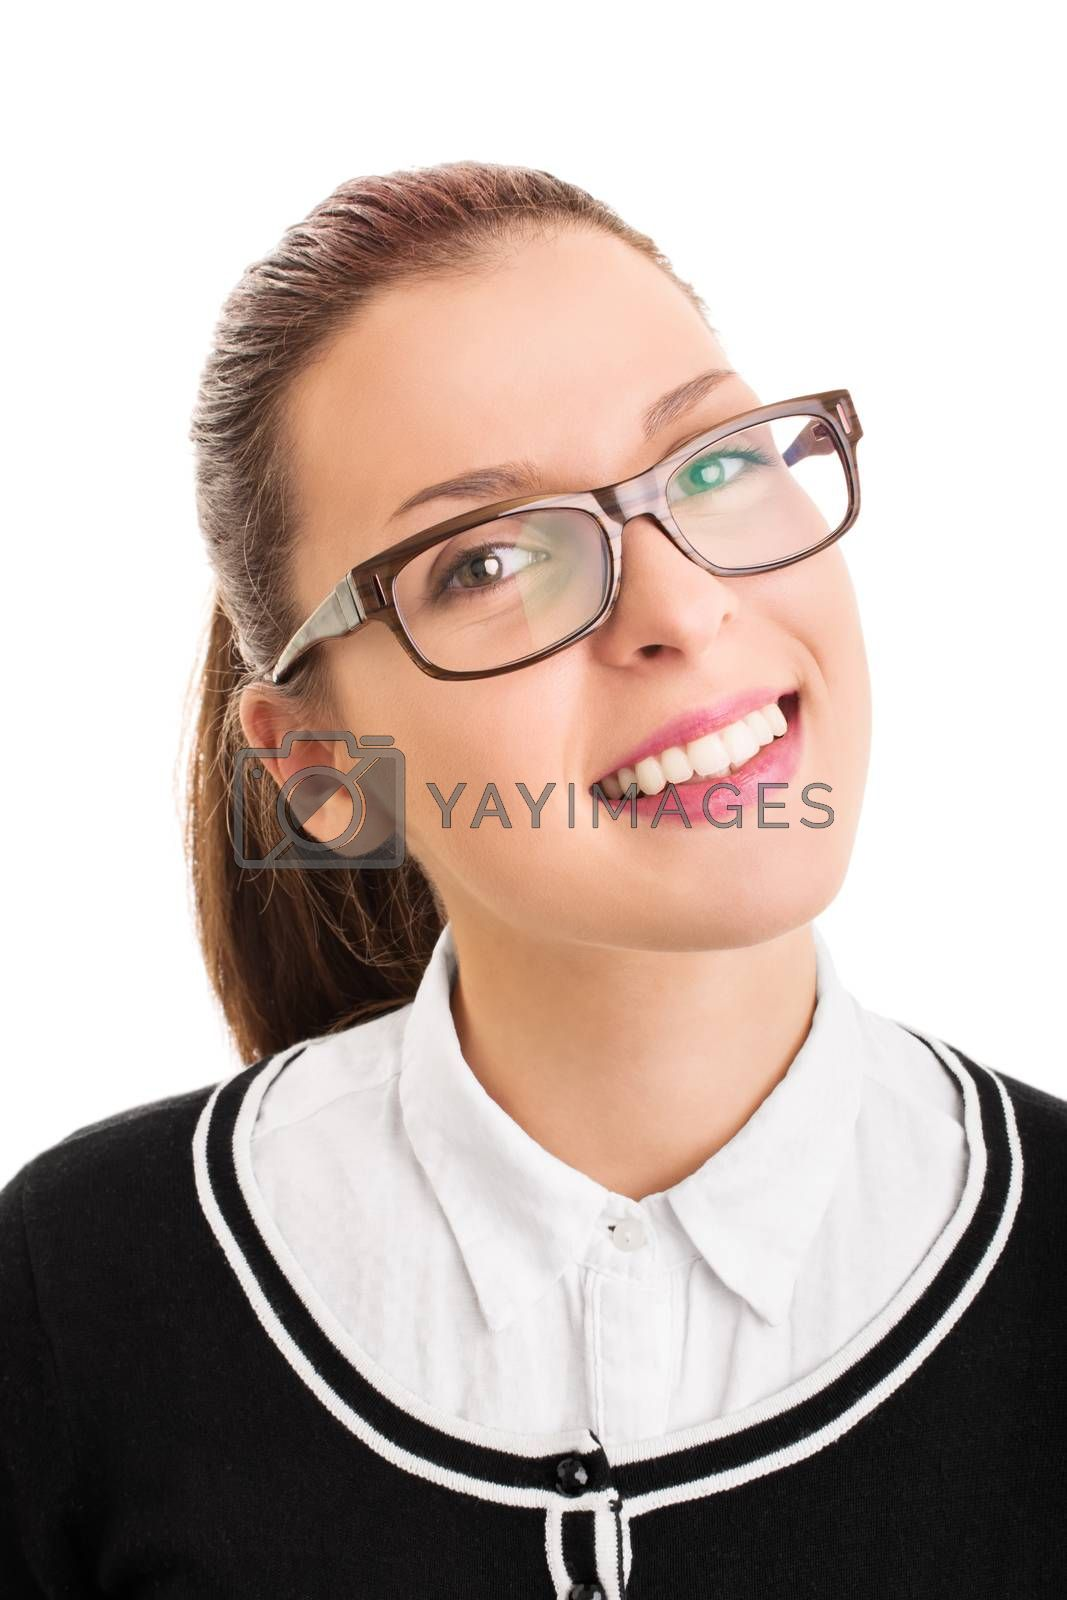 Portrait of a smiling confident young student girl wearing glasses, isolated on white background.